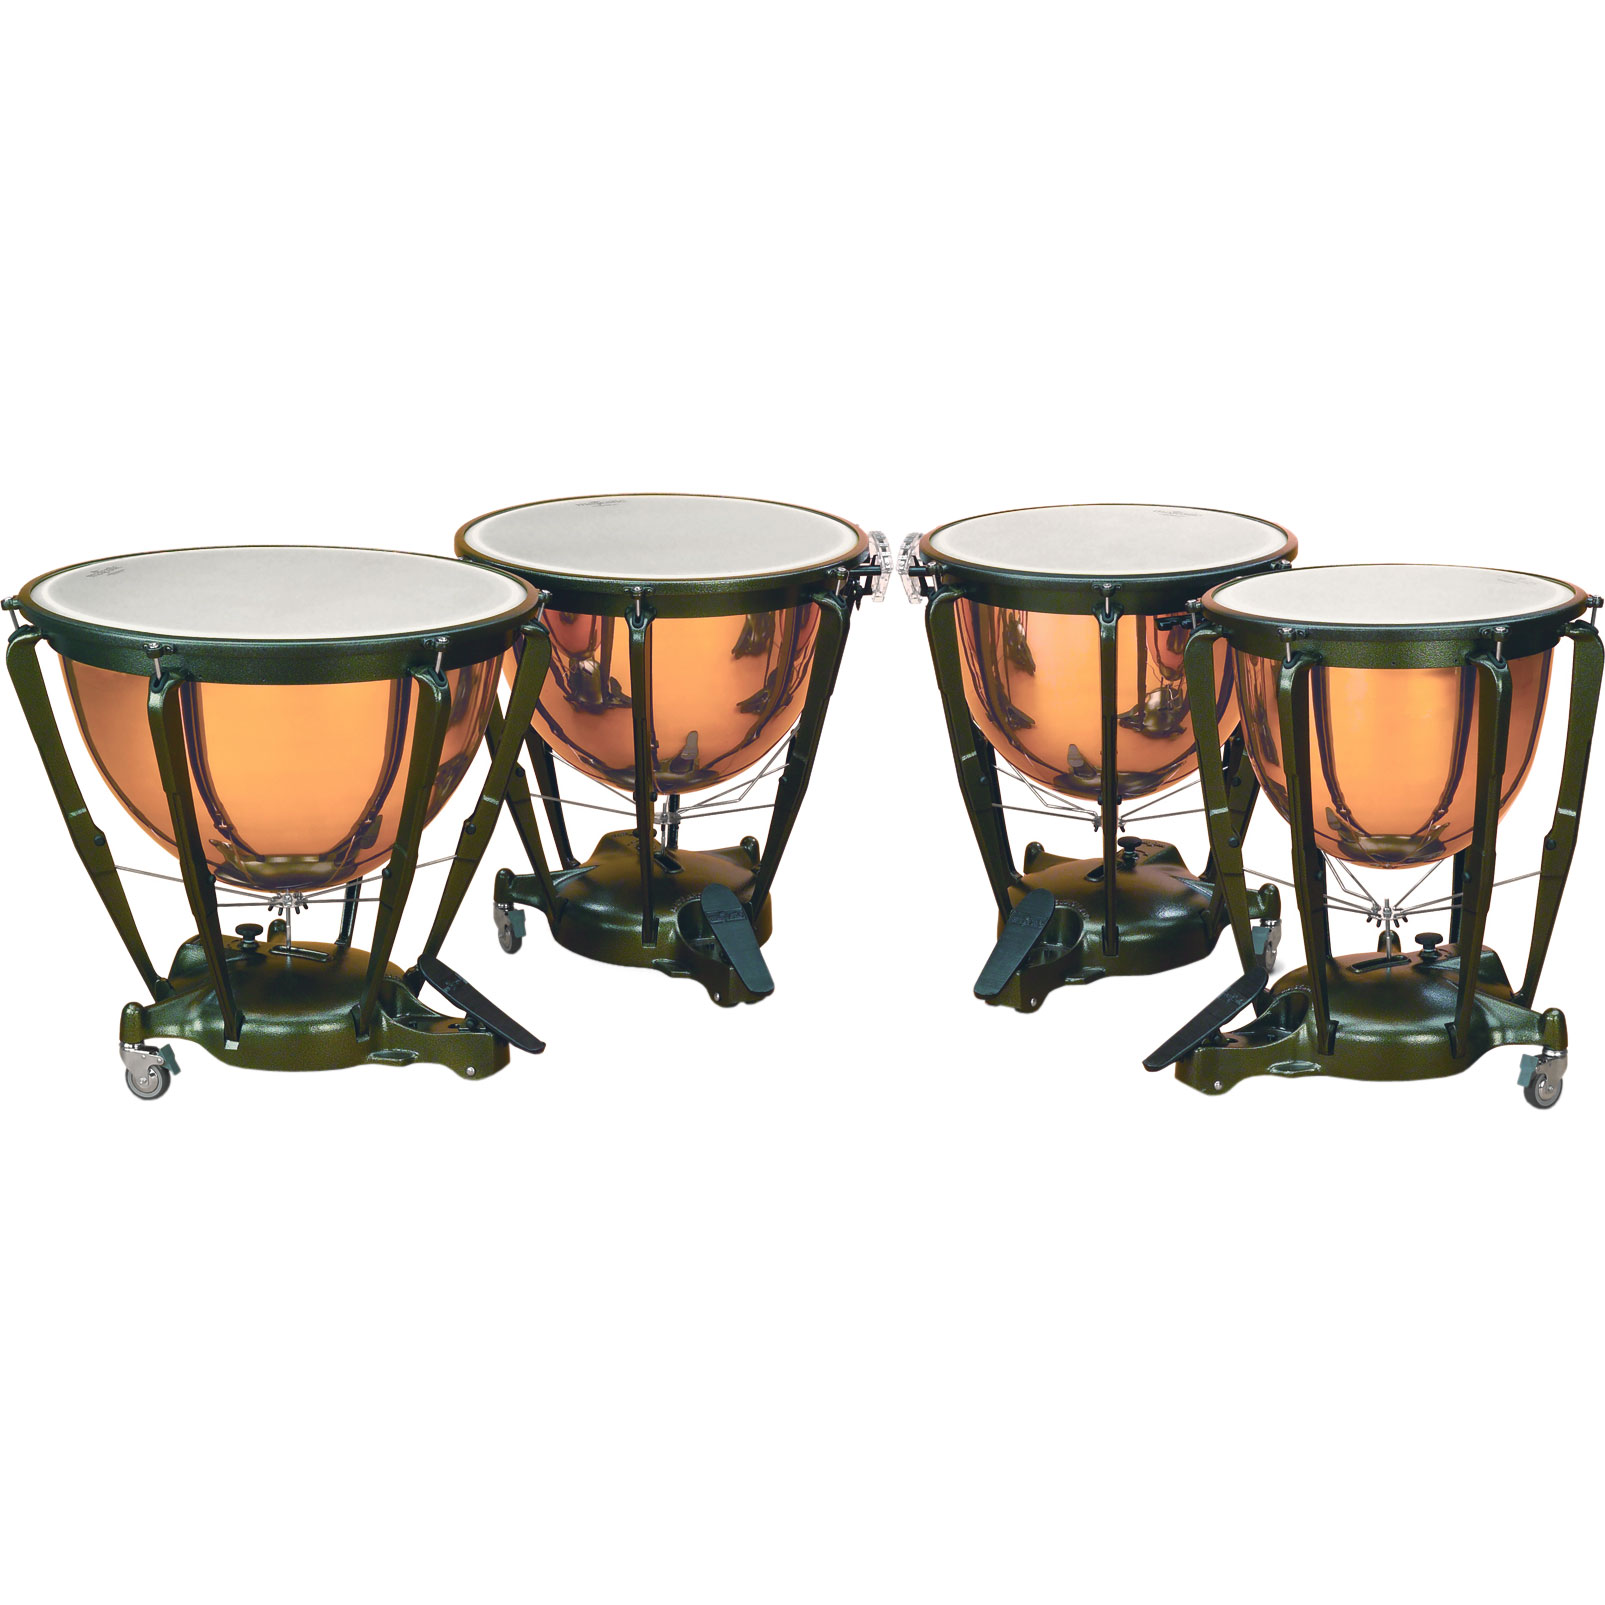 "Majestic 23/26/29/32"" Symphonic Timpani Set with Polished Copper Bowls"